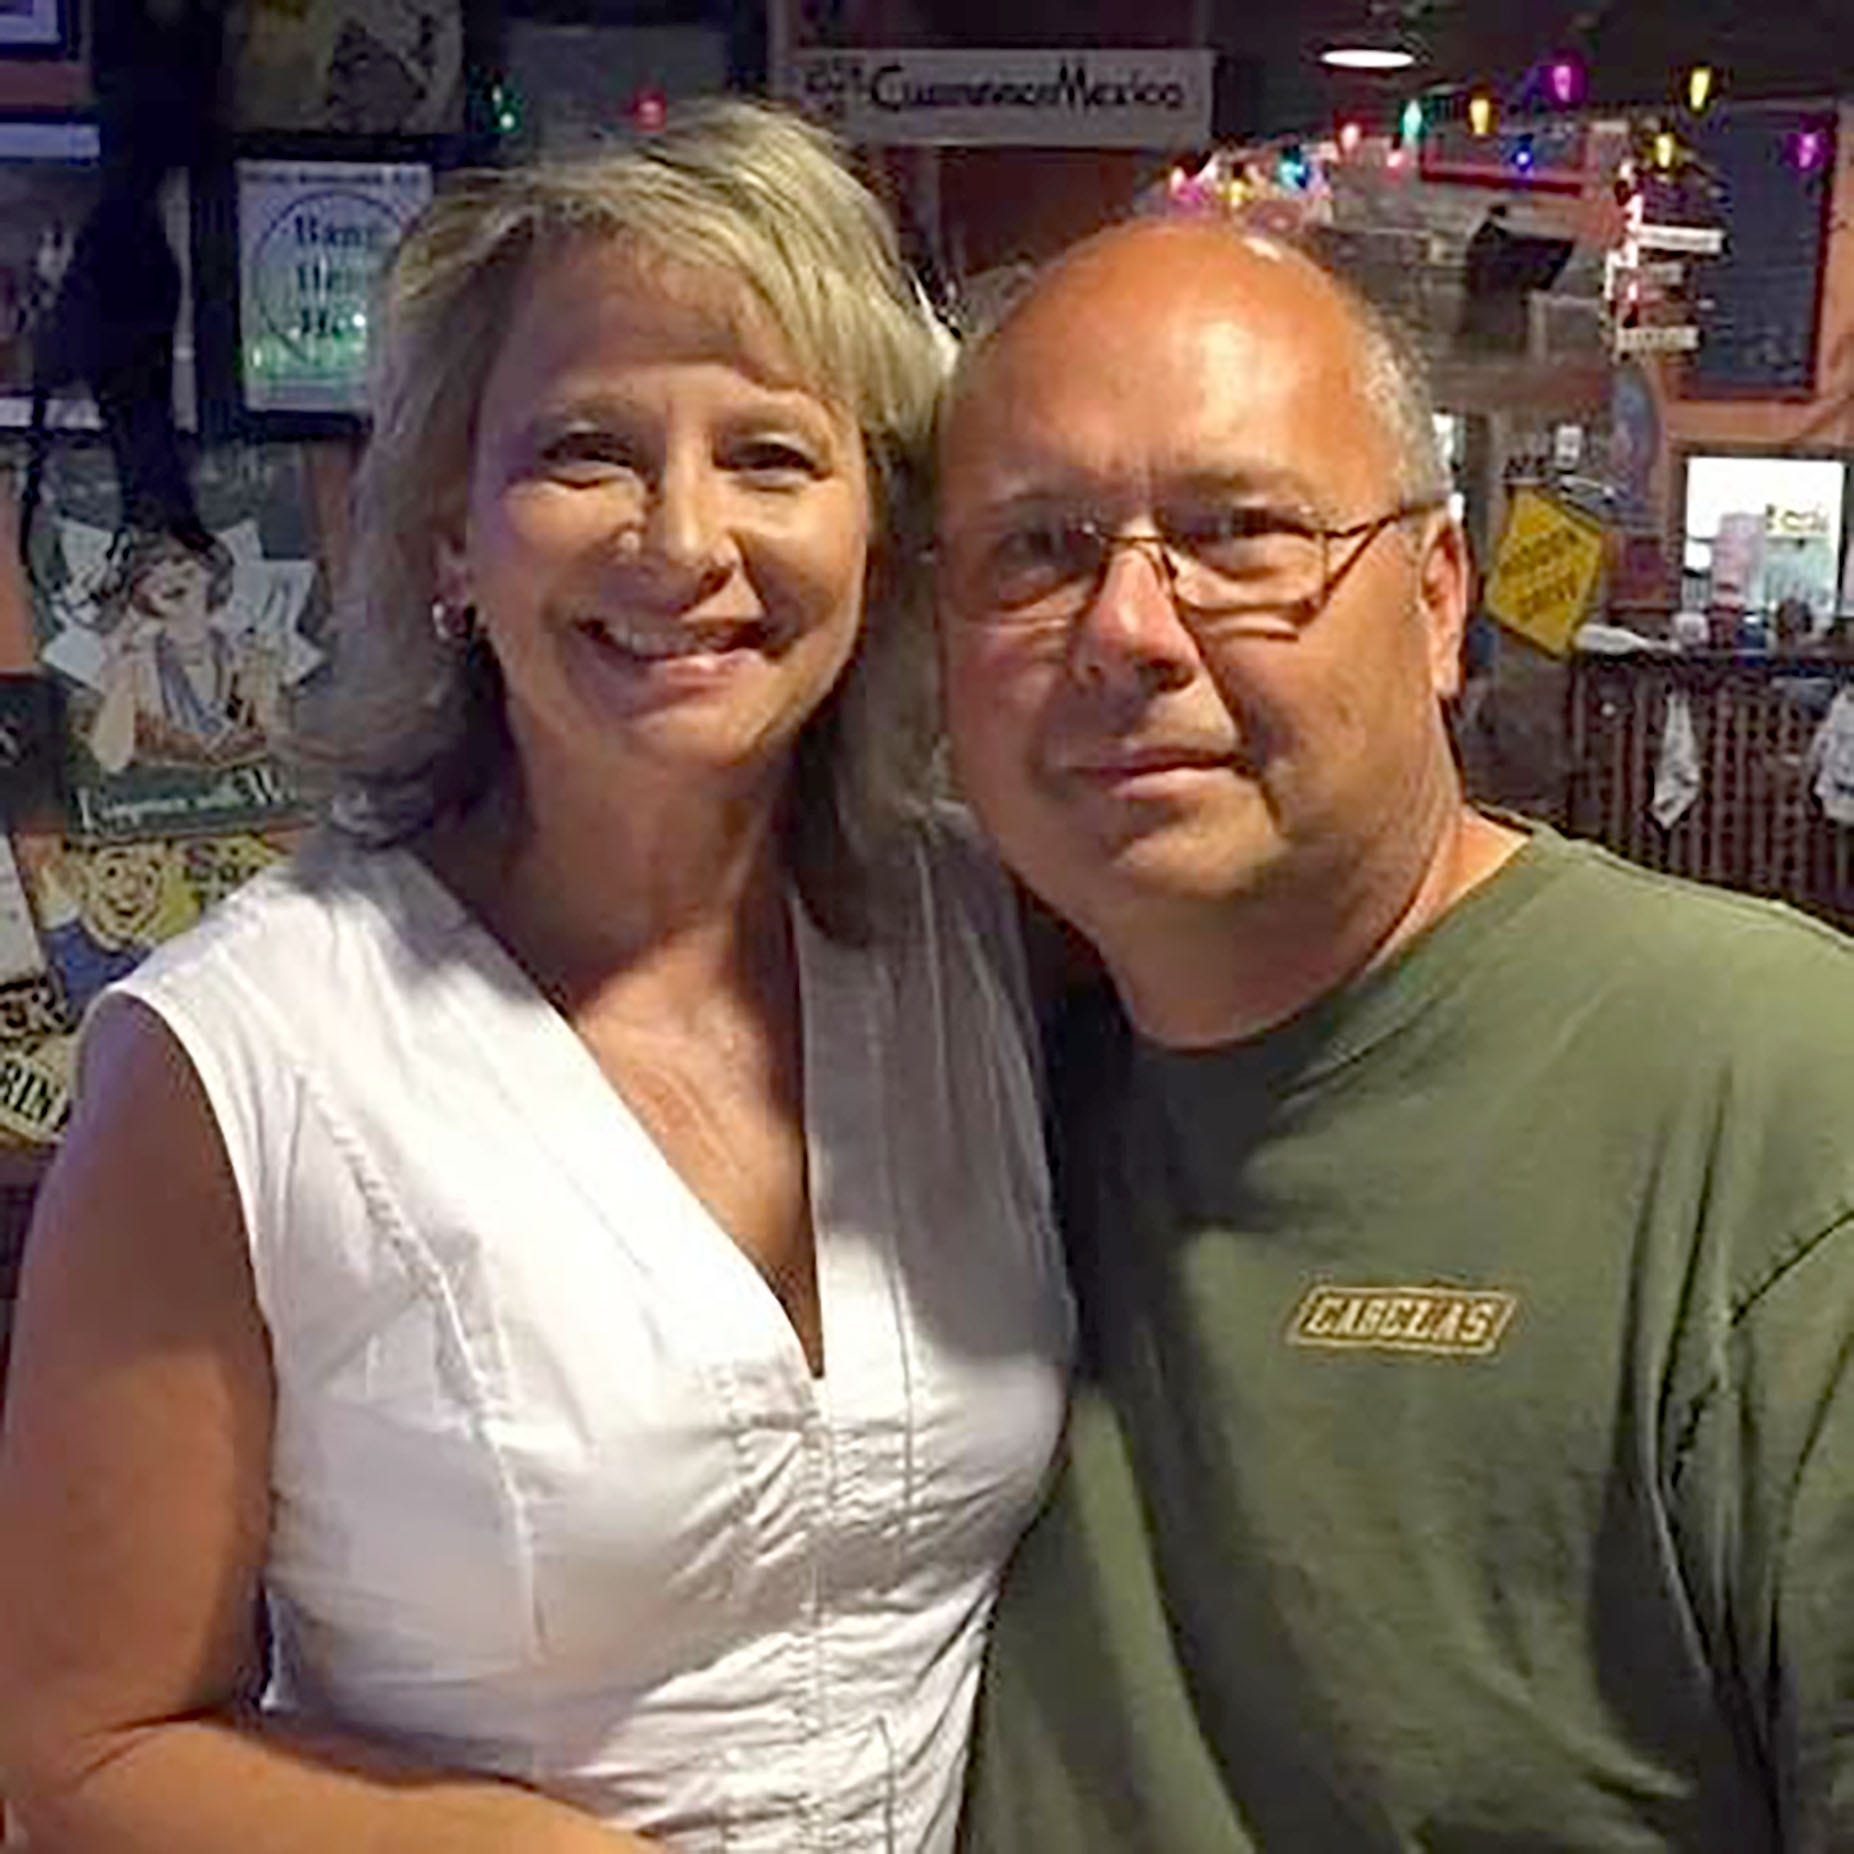 Theresia Gillie's husband, Keith, died by suicide in April 2017 at the age of 53. This photo of the couple, who were married in 1984, was taken in July 2016 at Dick's Last Resort restaurant at the Mall of America in Minneapolis. Gillie family photo.